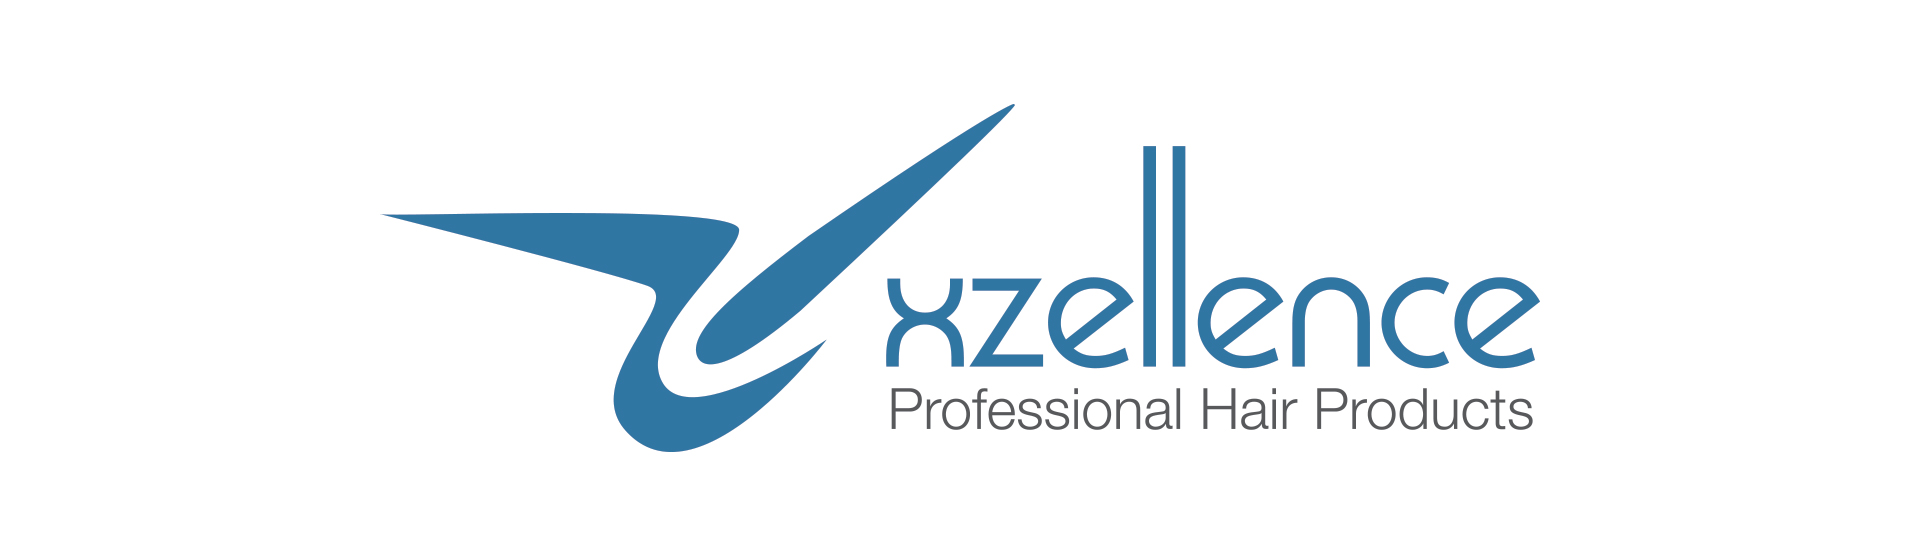 XZellent Professional Hair Products Logo Design